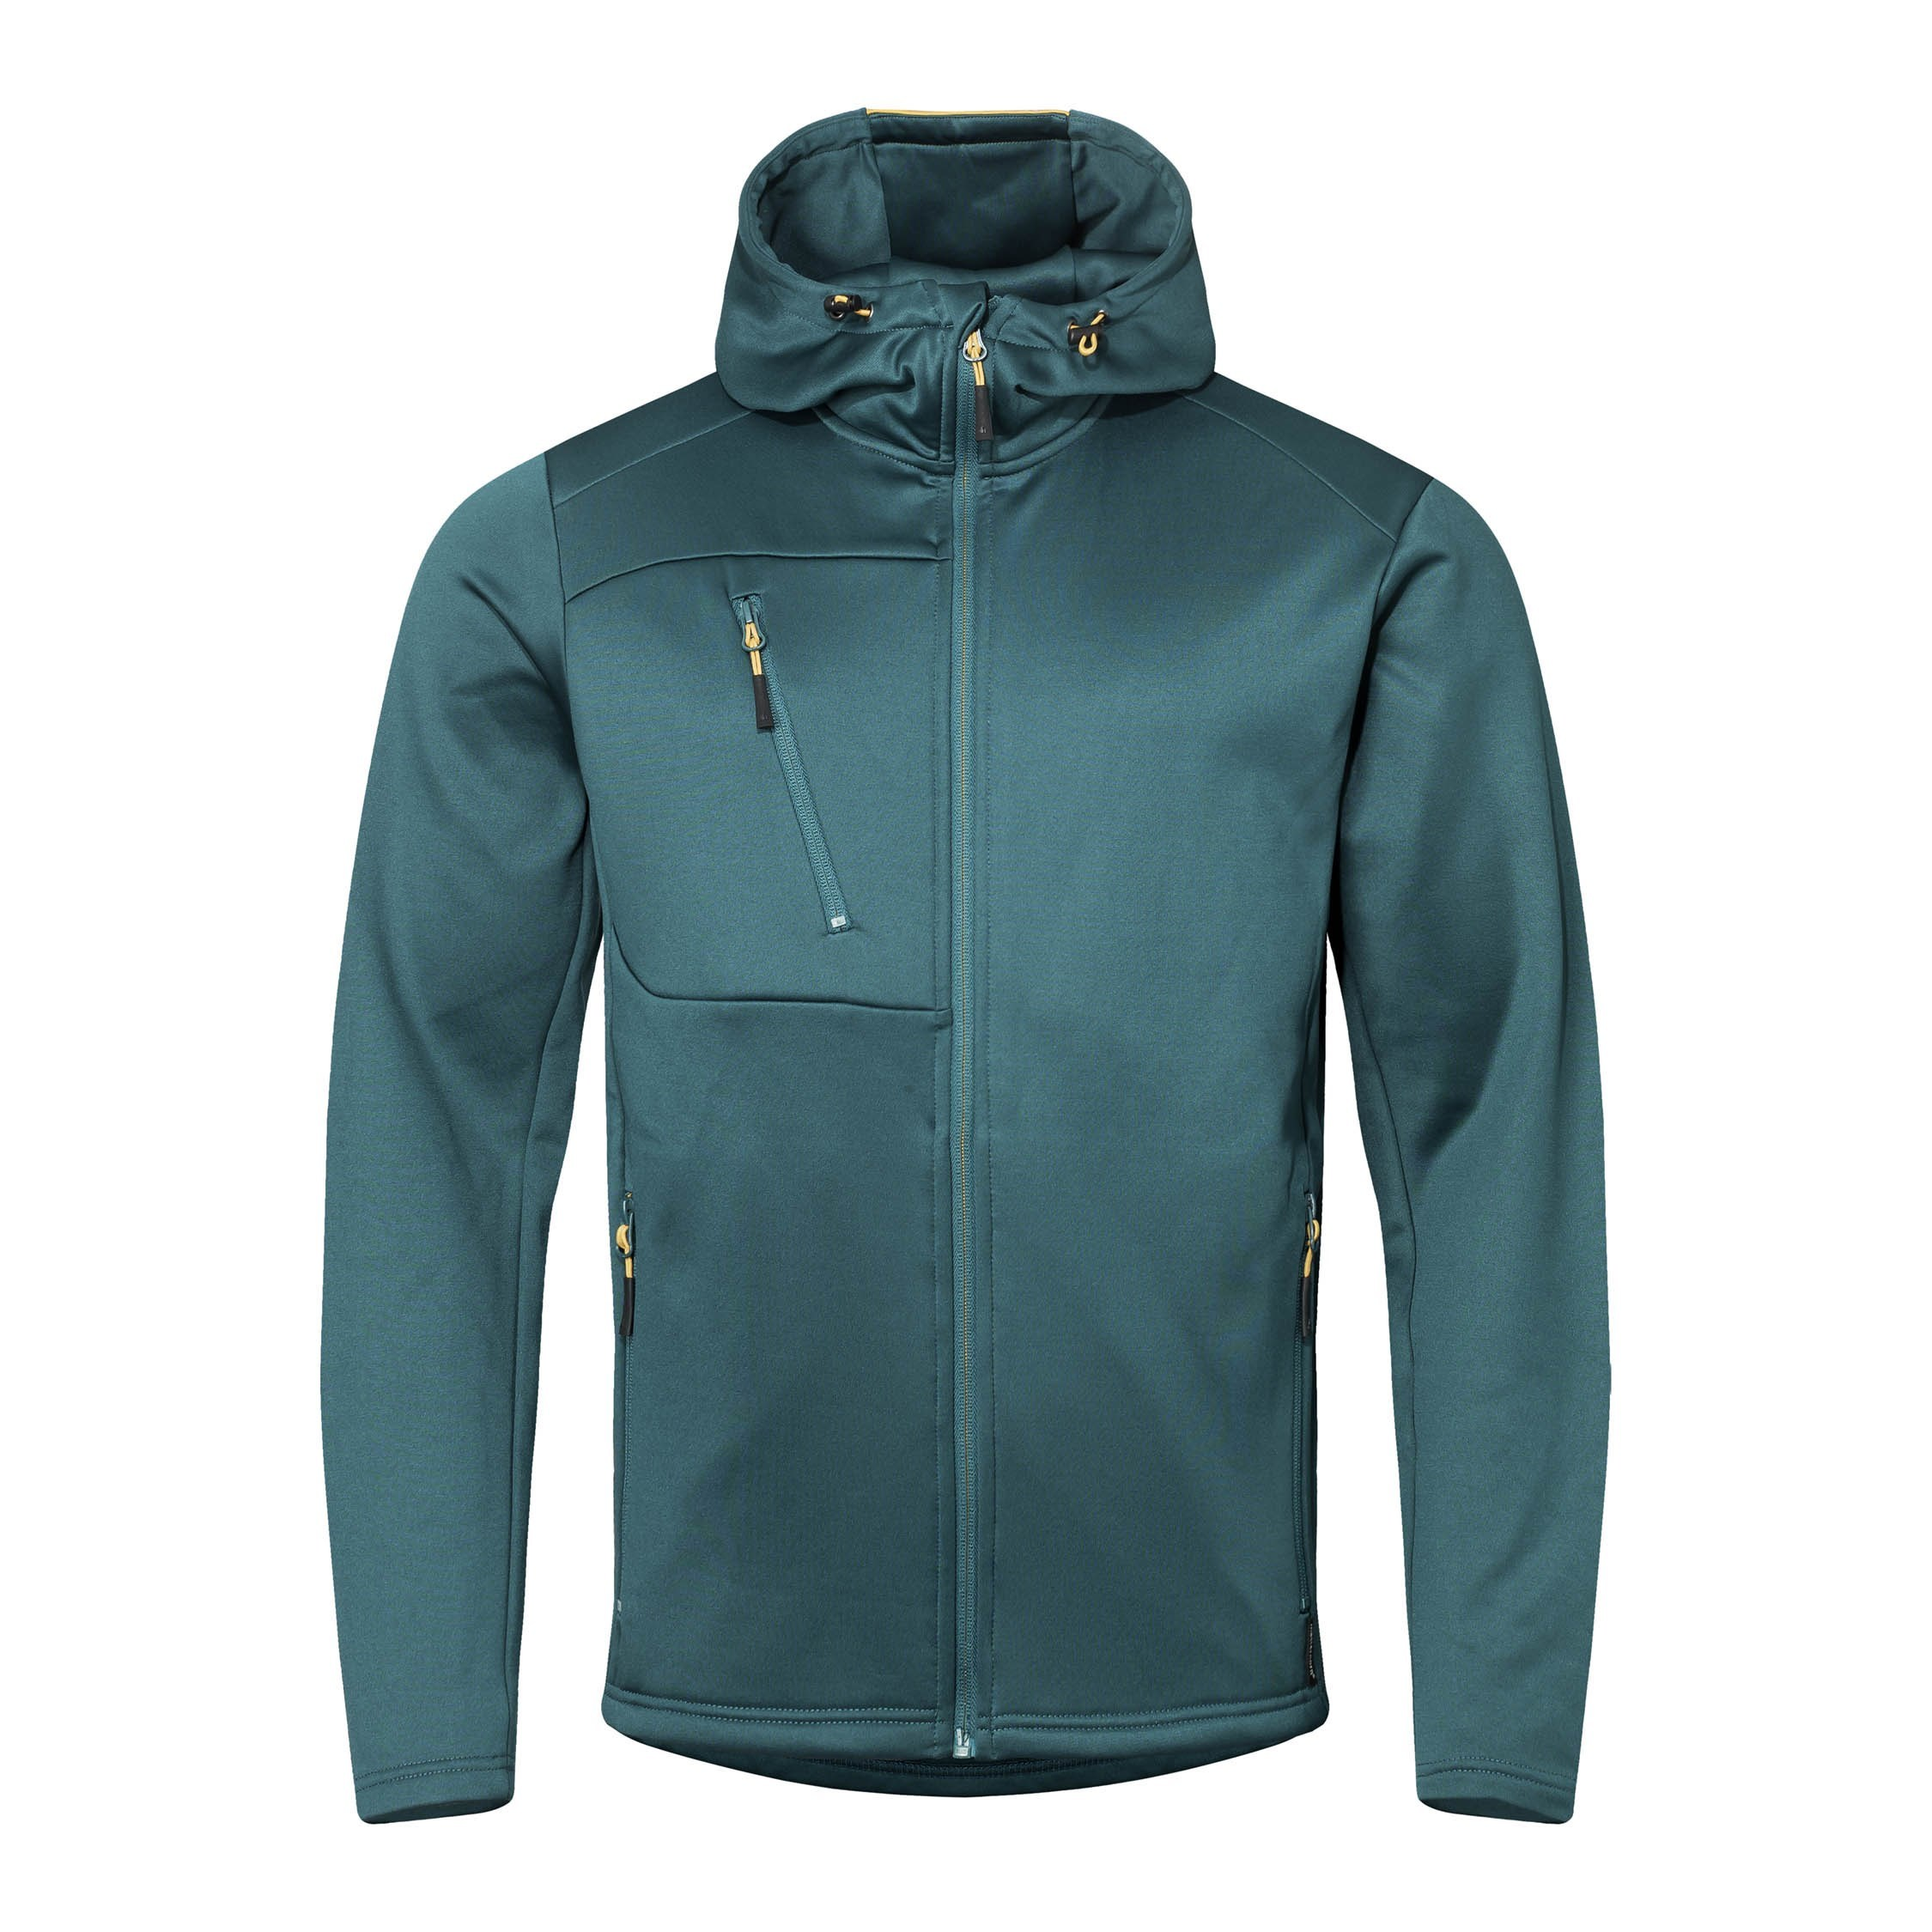 Matterhorn MH-660 Mid Layer Jacket Petrol 3XL